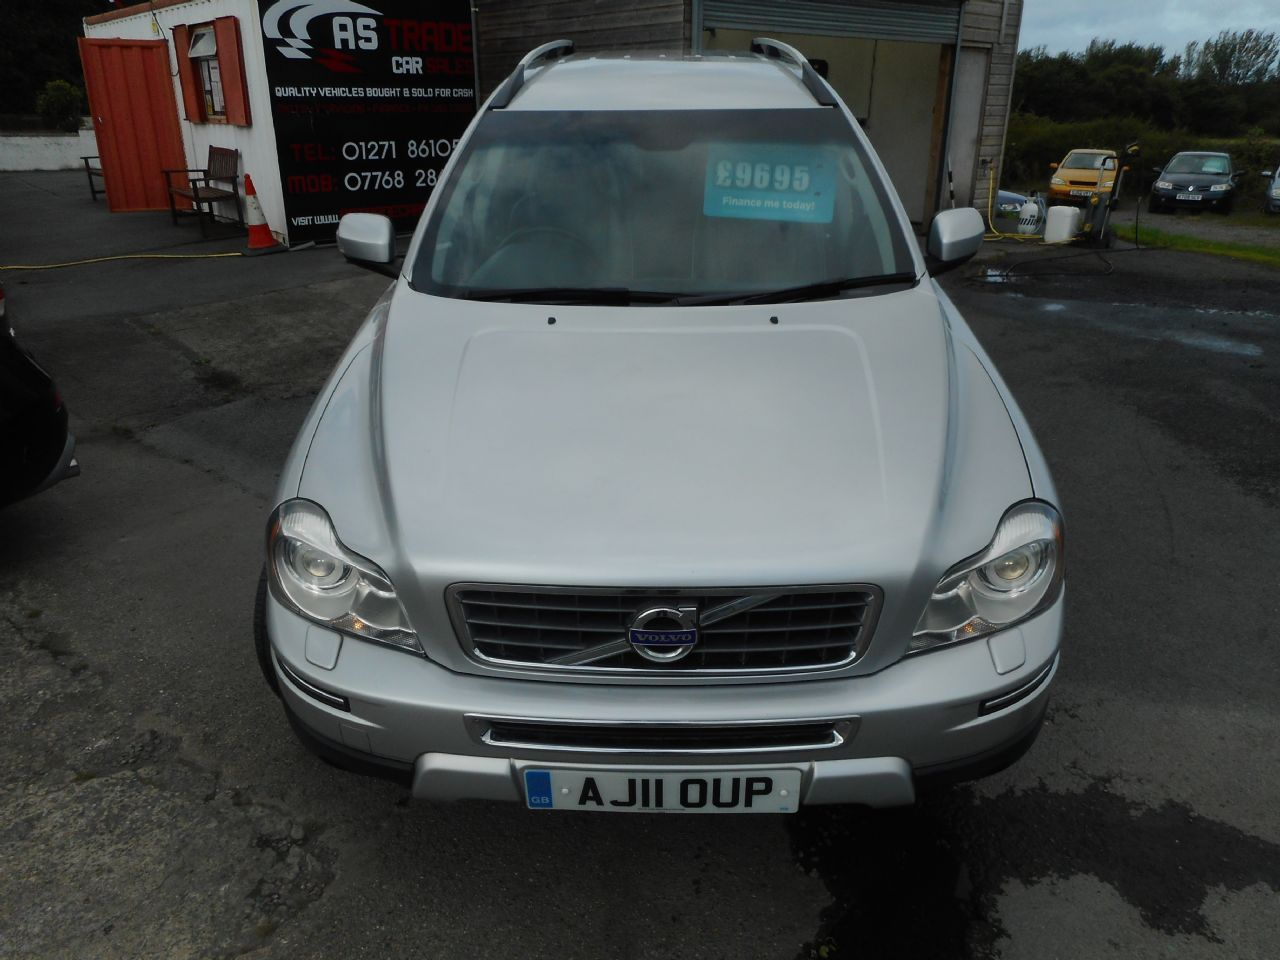 VOLVO XC90 D5 AWD (200 bhp) SE Lux Geartronic (2011) - Picture 2